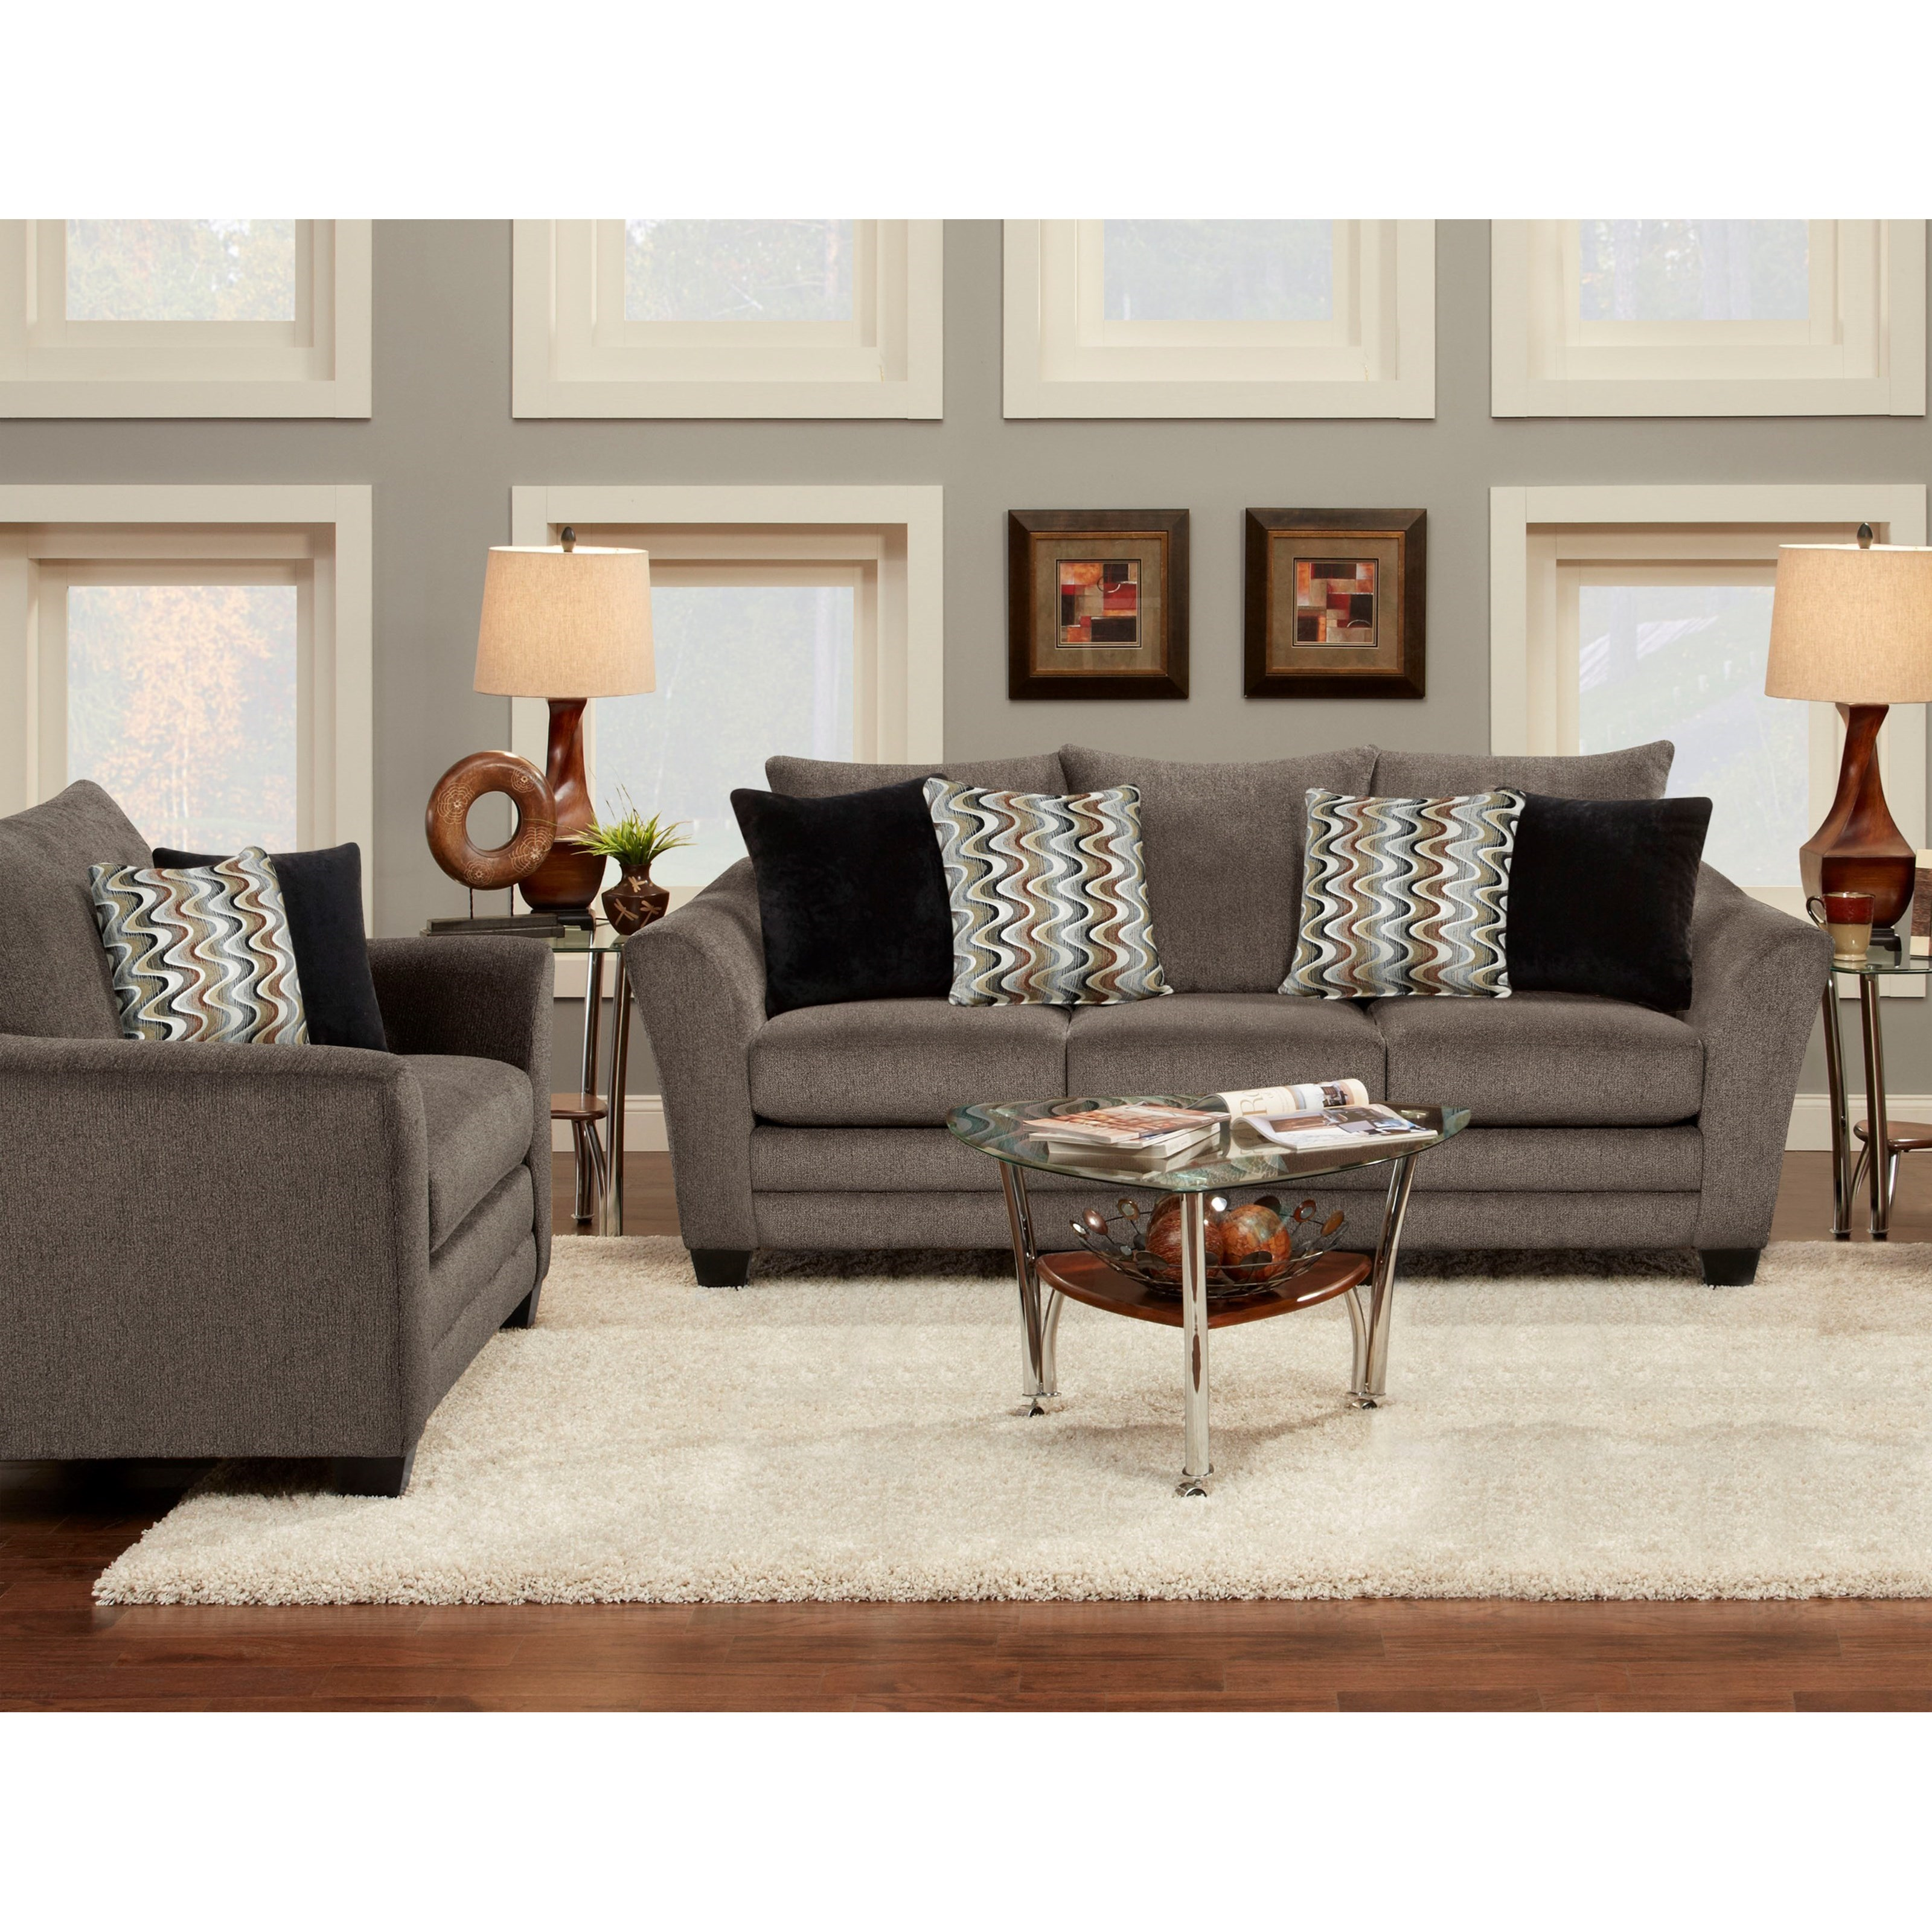 Fusion Furniture 9700 Stationary Living Room Group Adcock Furniture Stationary Living Room